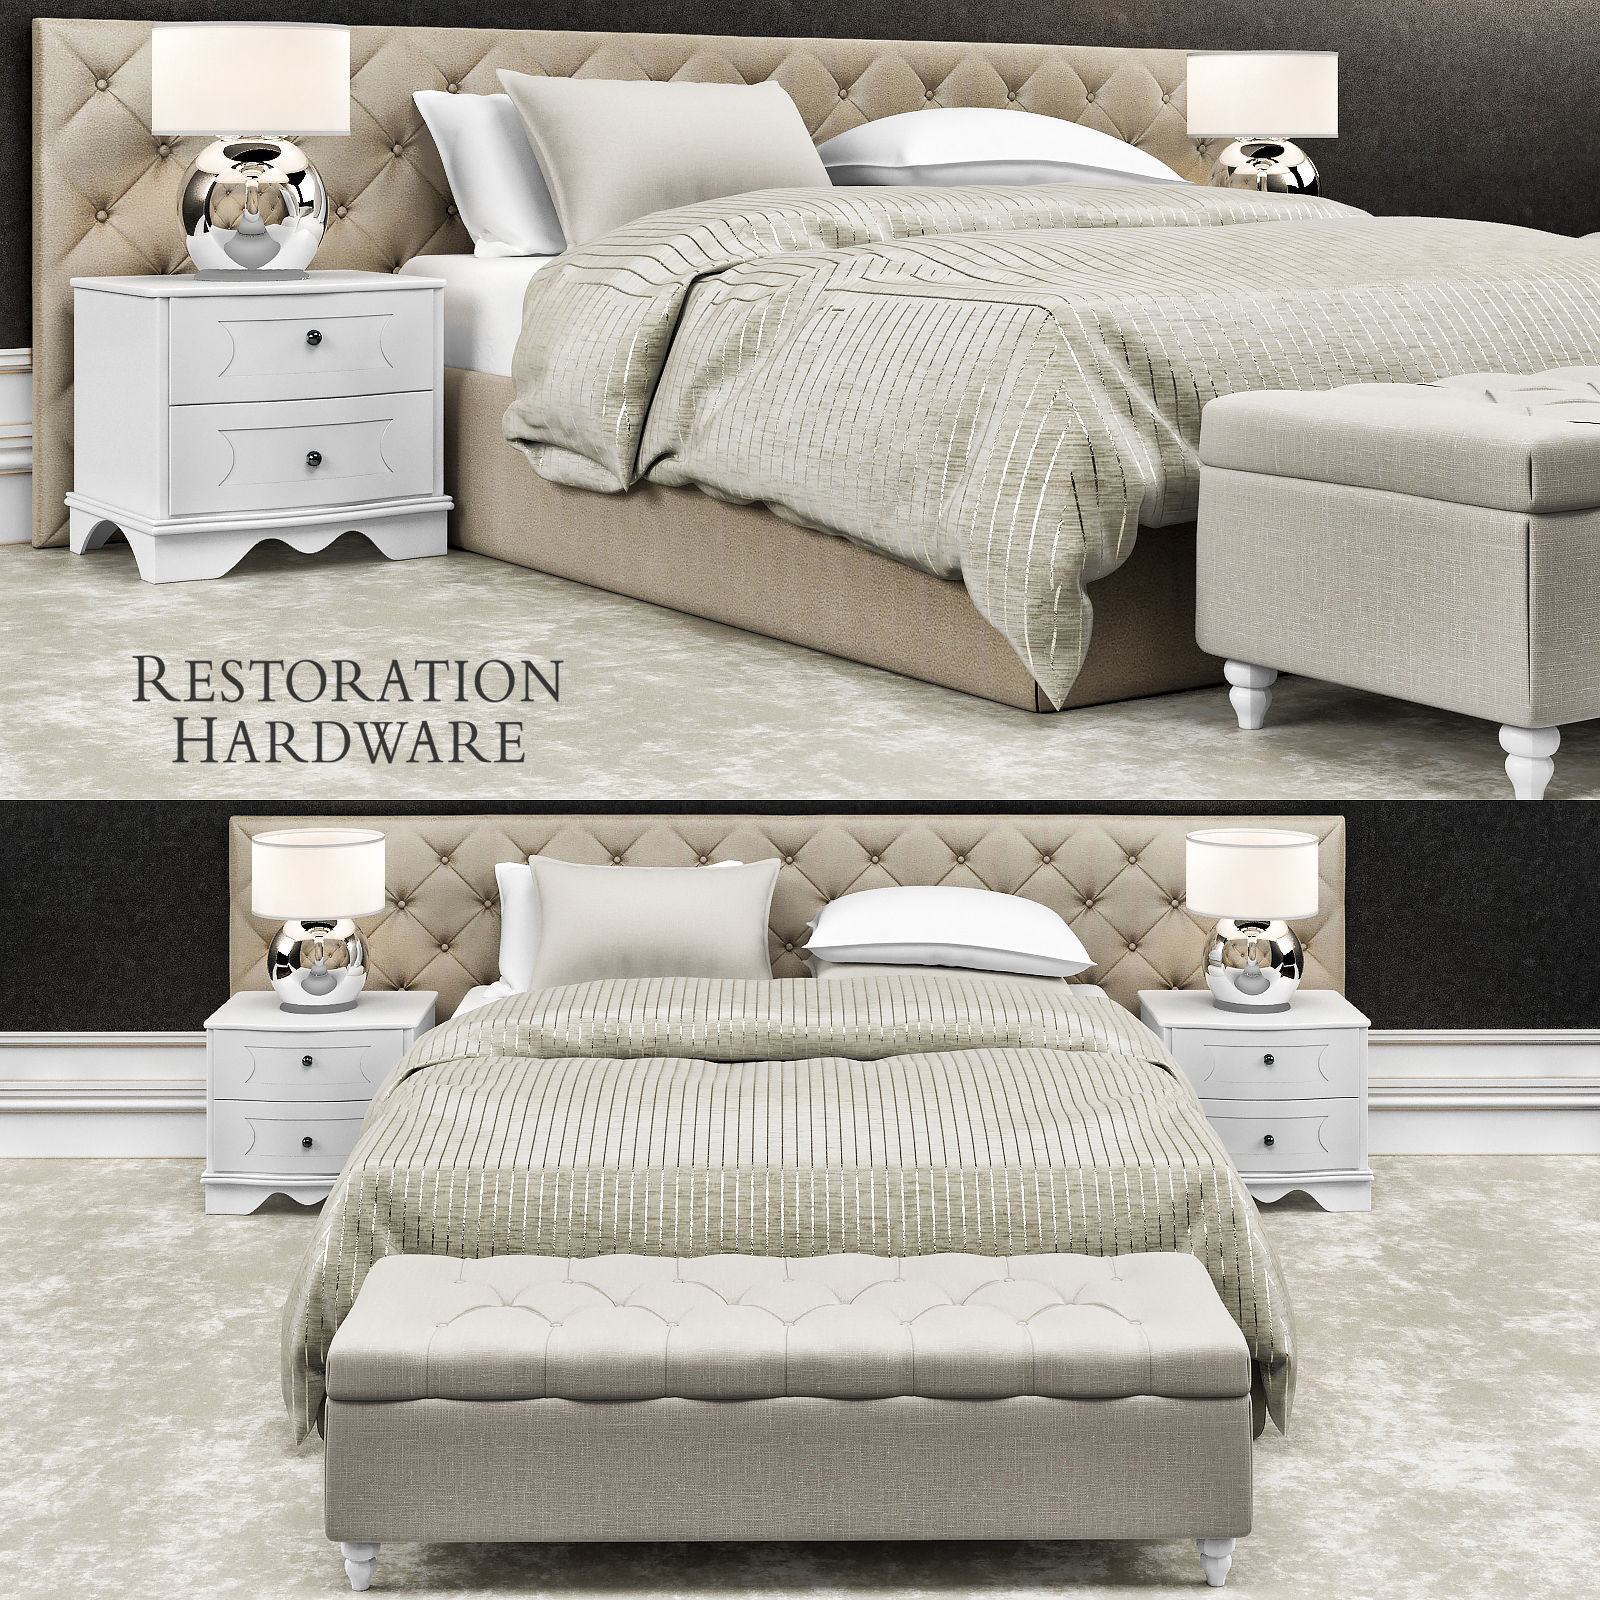 Restoration hardware bedroom - Restoration Hardware Bedroom Furniture 3d Model Max Obj Mtl 1